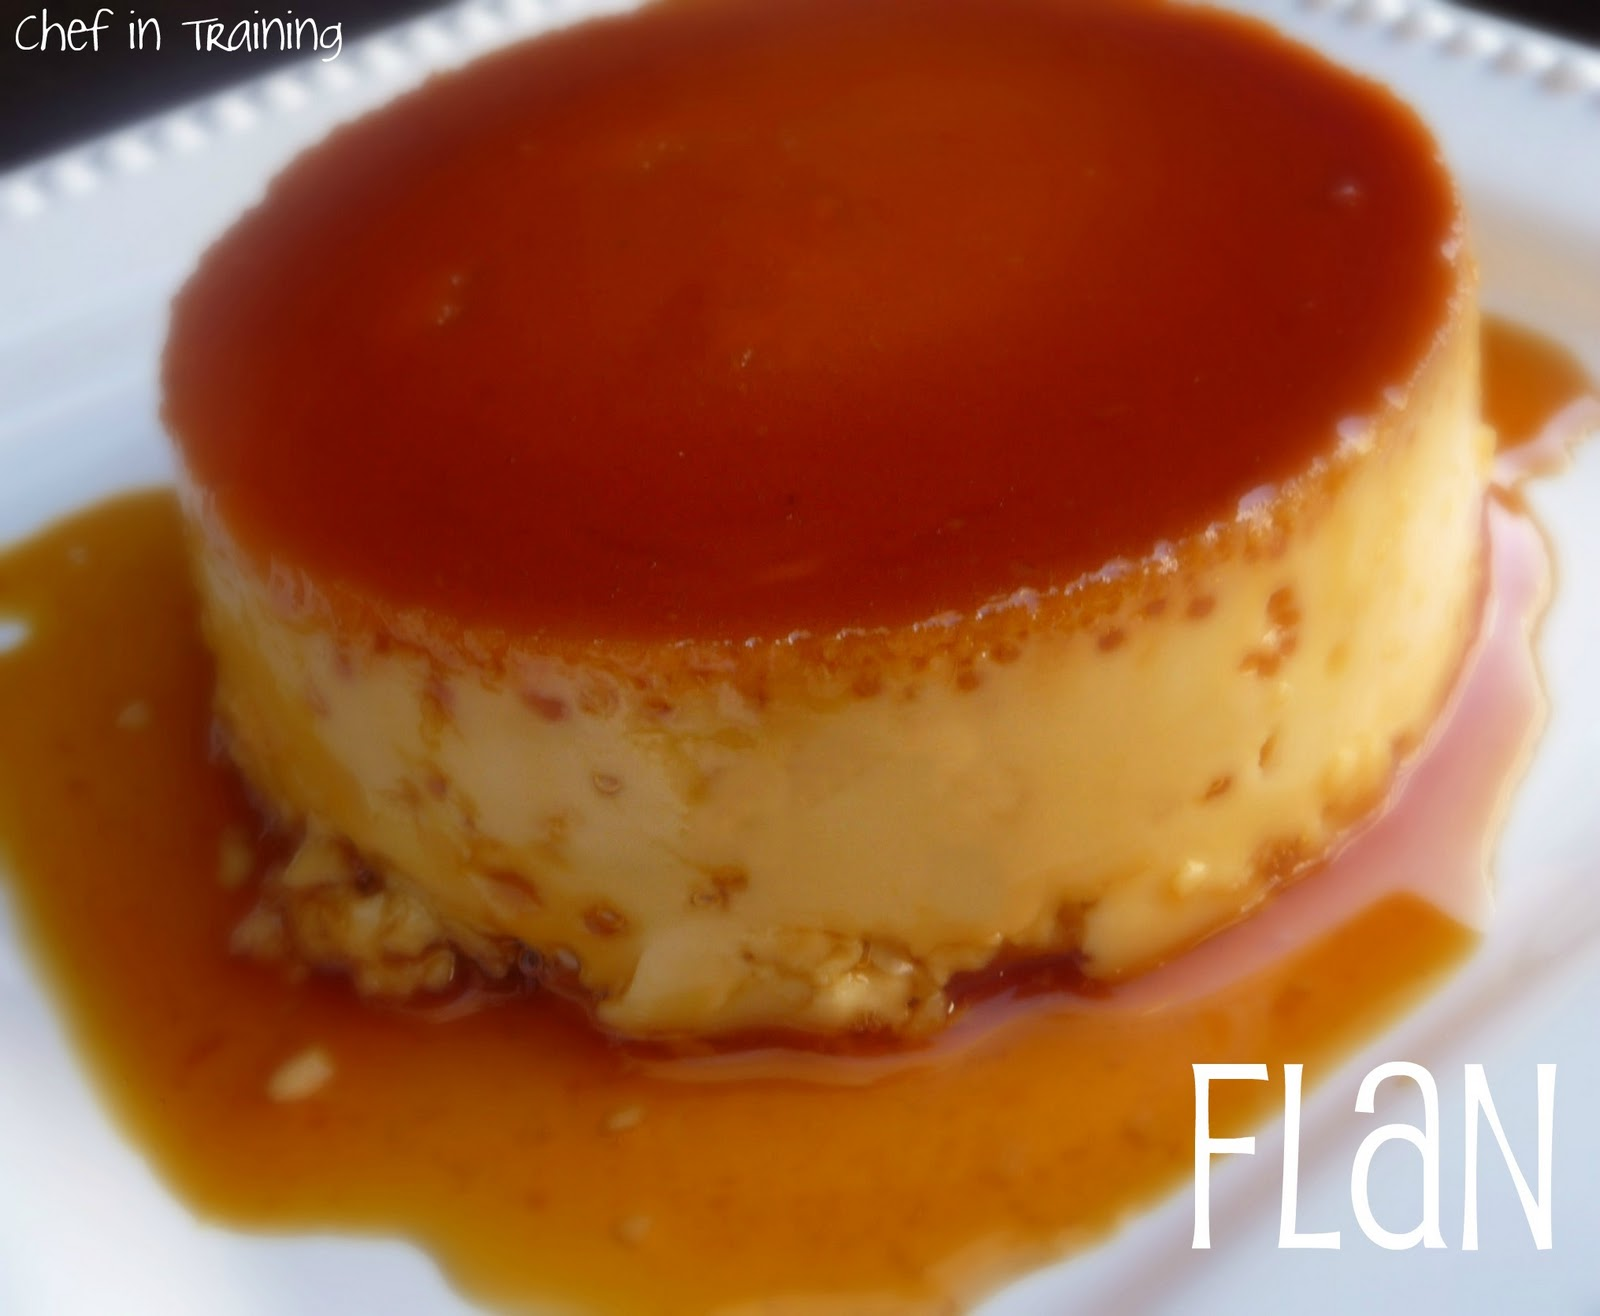 flan chestnut flan coconut flan orange flan baked flan flan with